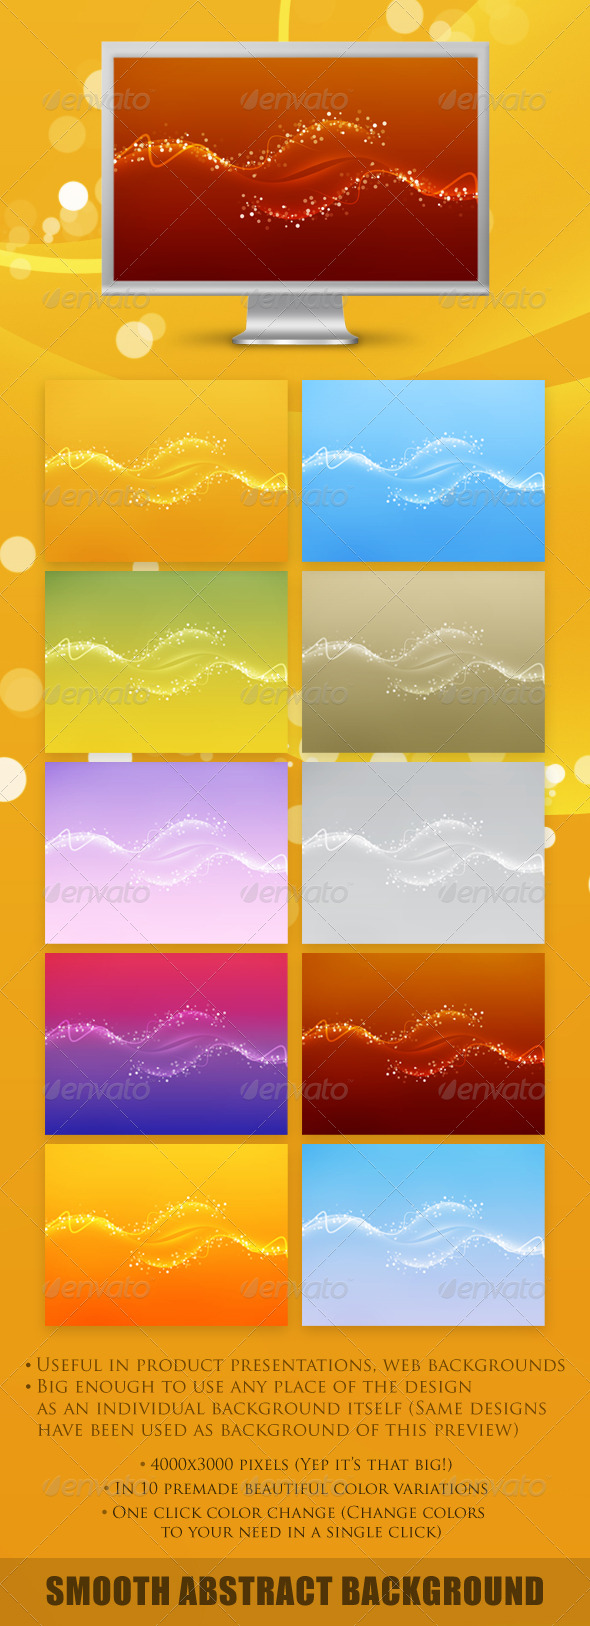 Smooth Abstract Background - Abstract Backgrounds